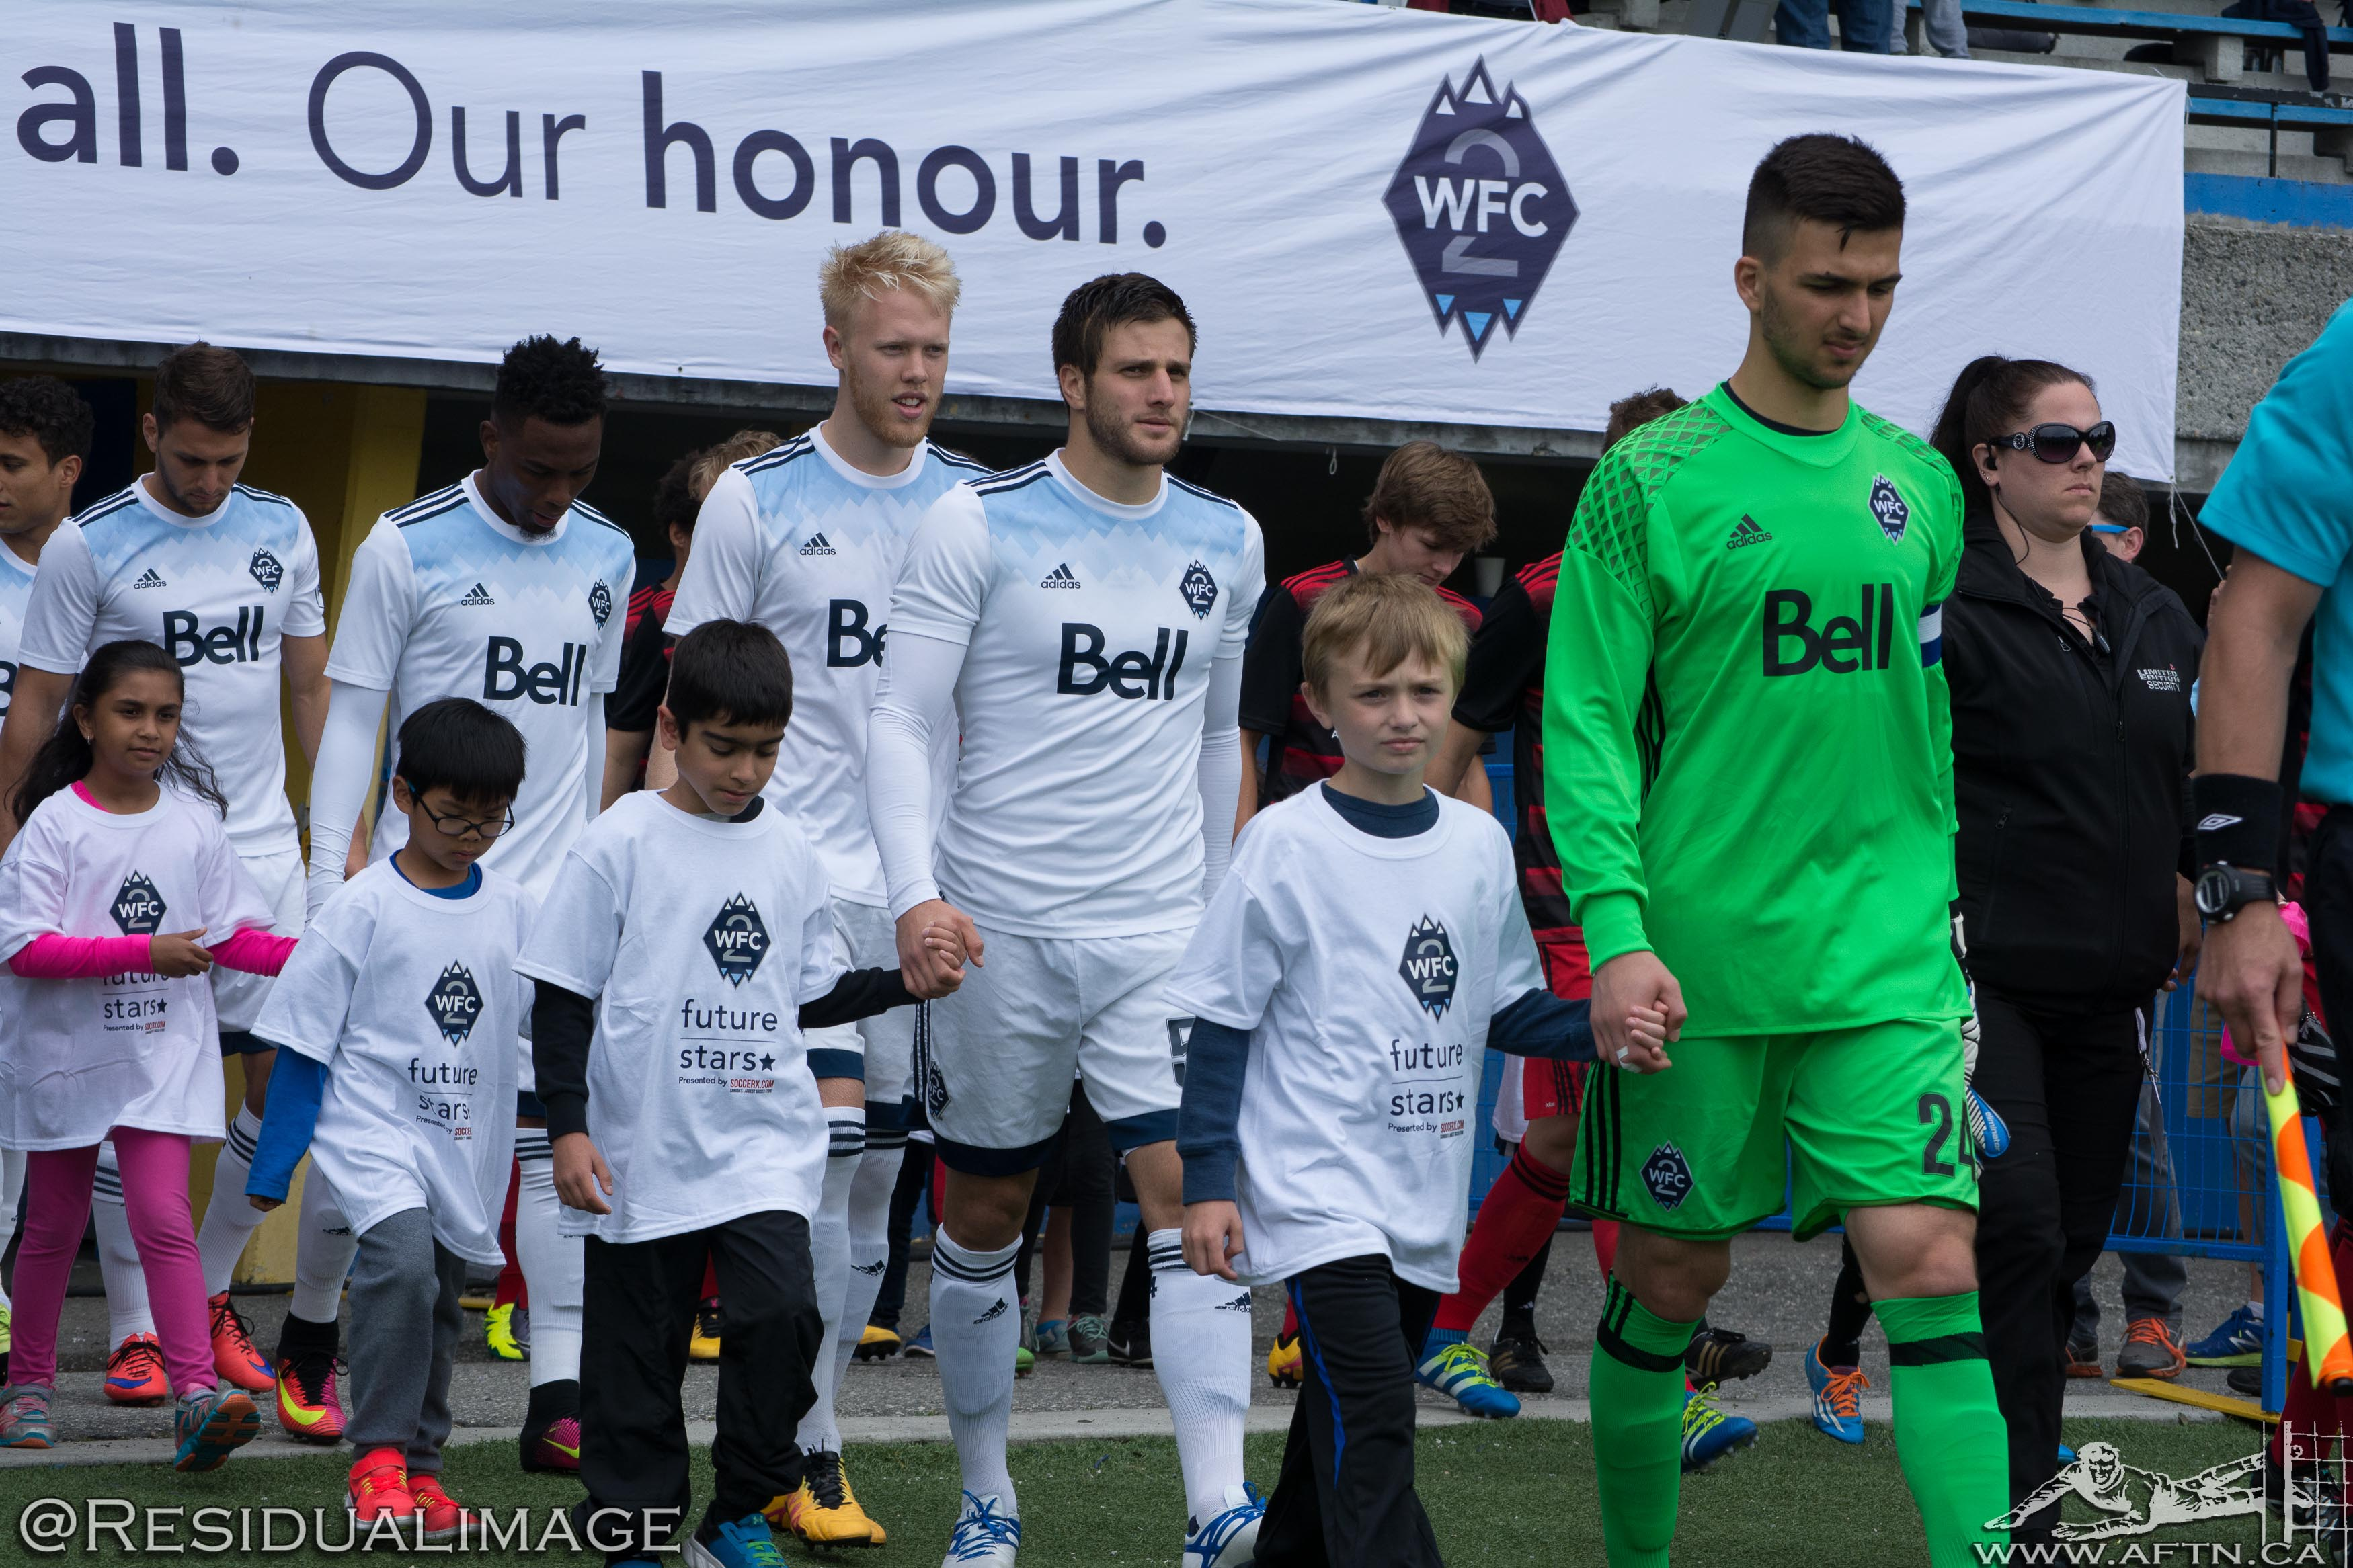 WFC2 v Timbers 2 - June 2016 (5)